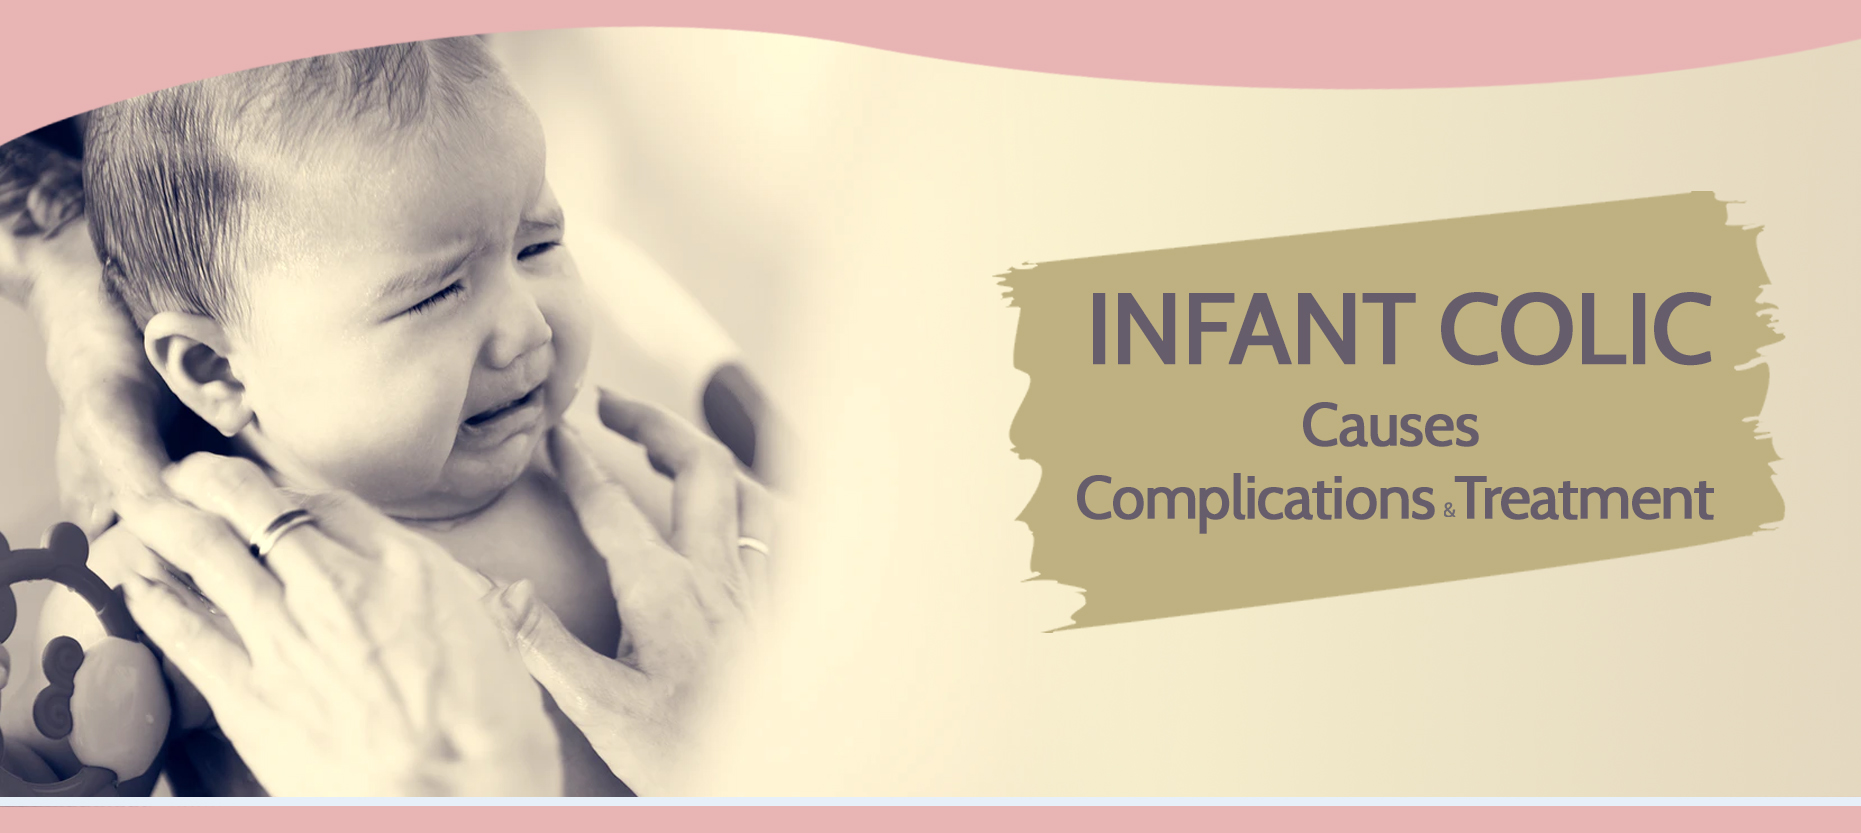 Don't Be Afraid of Colic in Infants- Tips for Parents